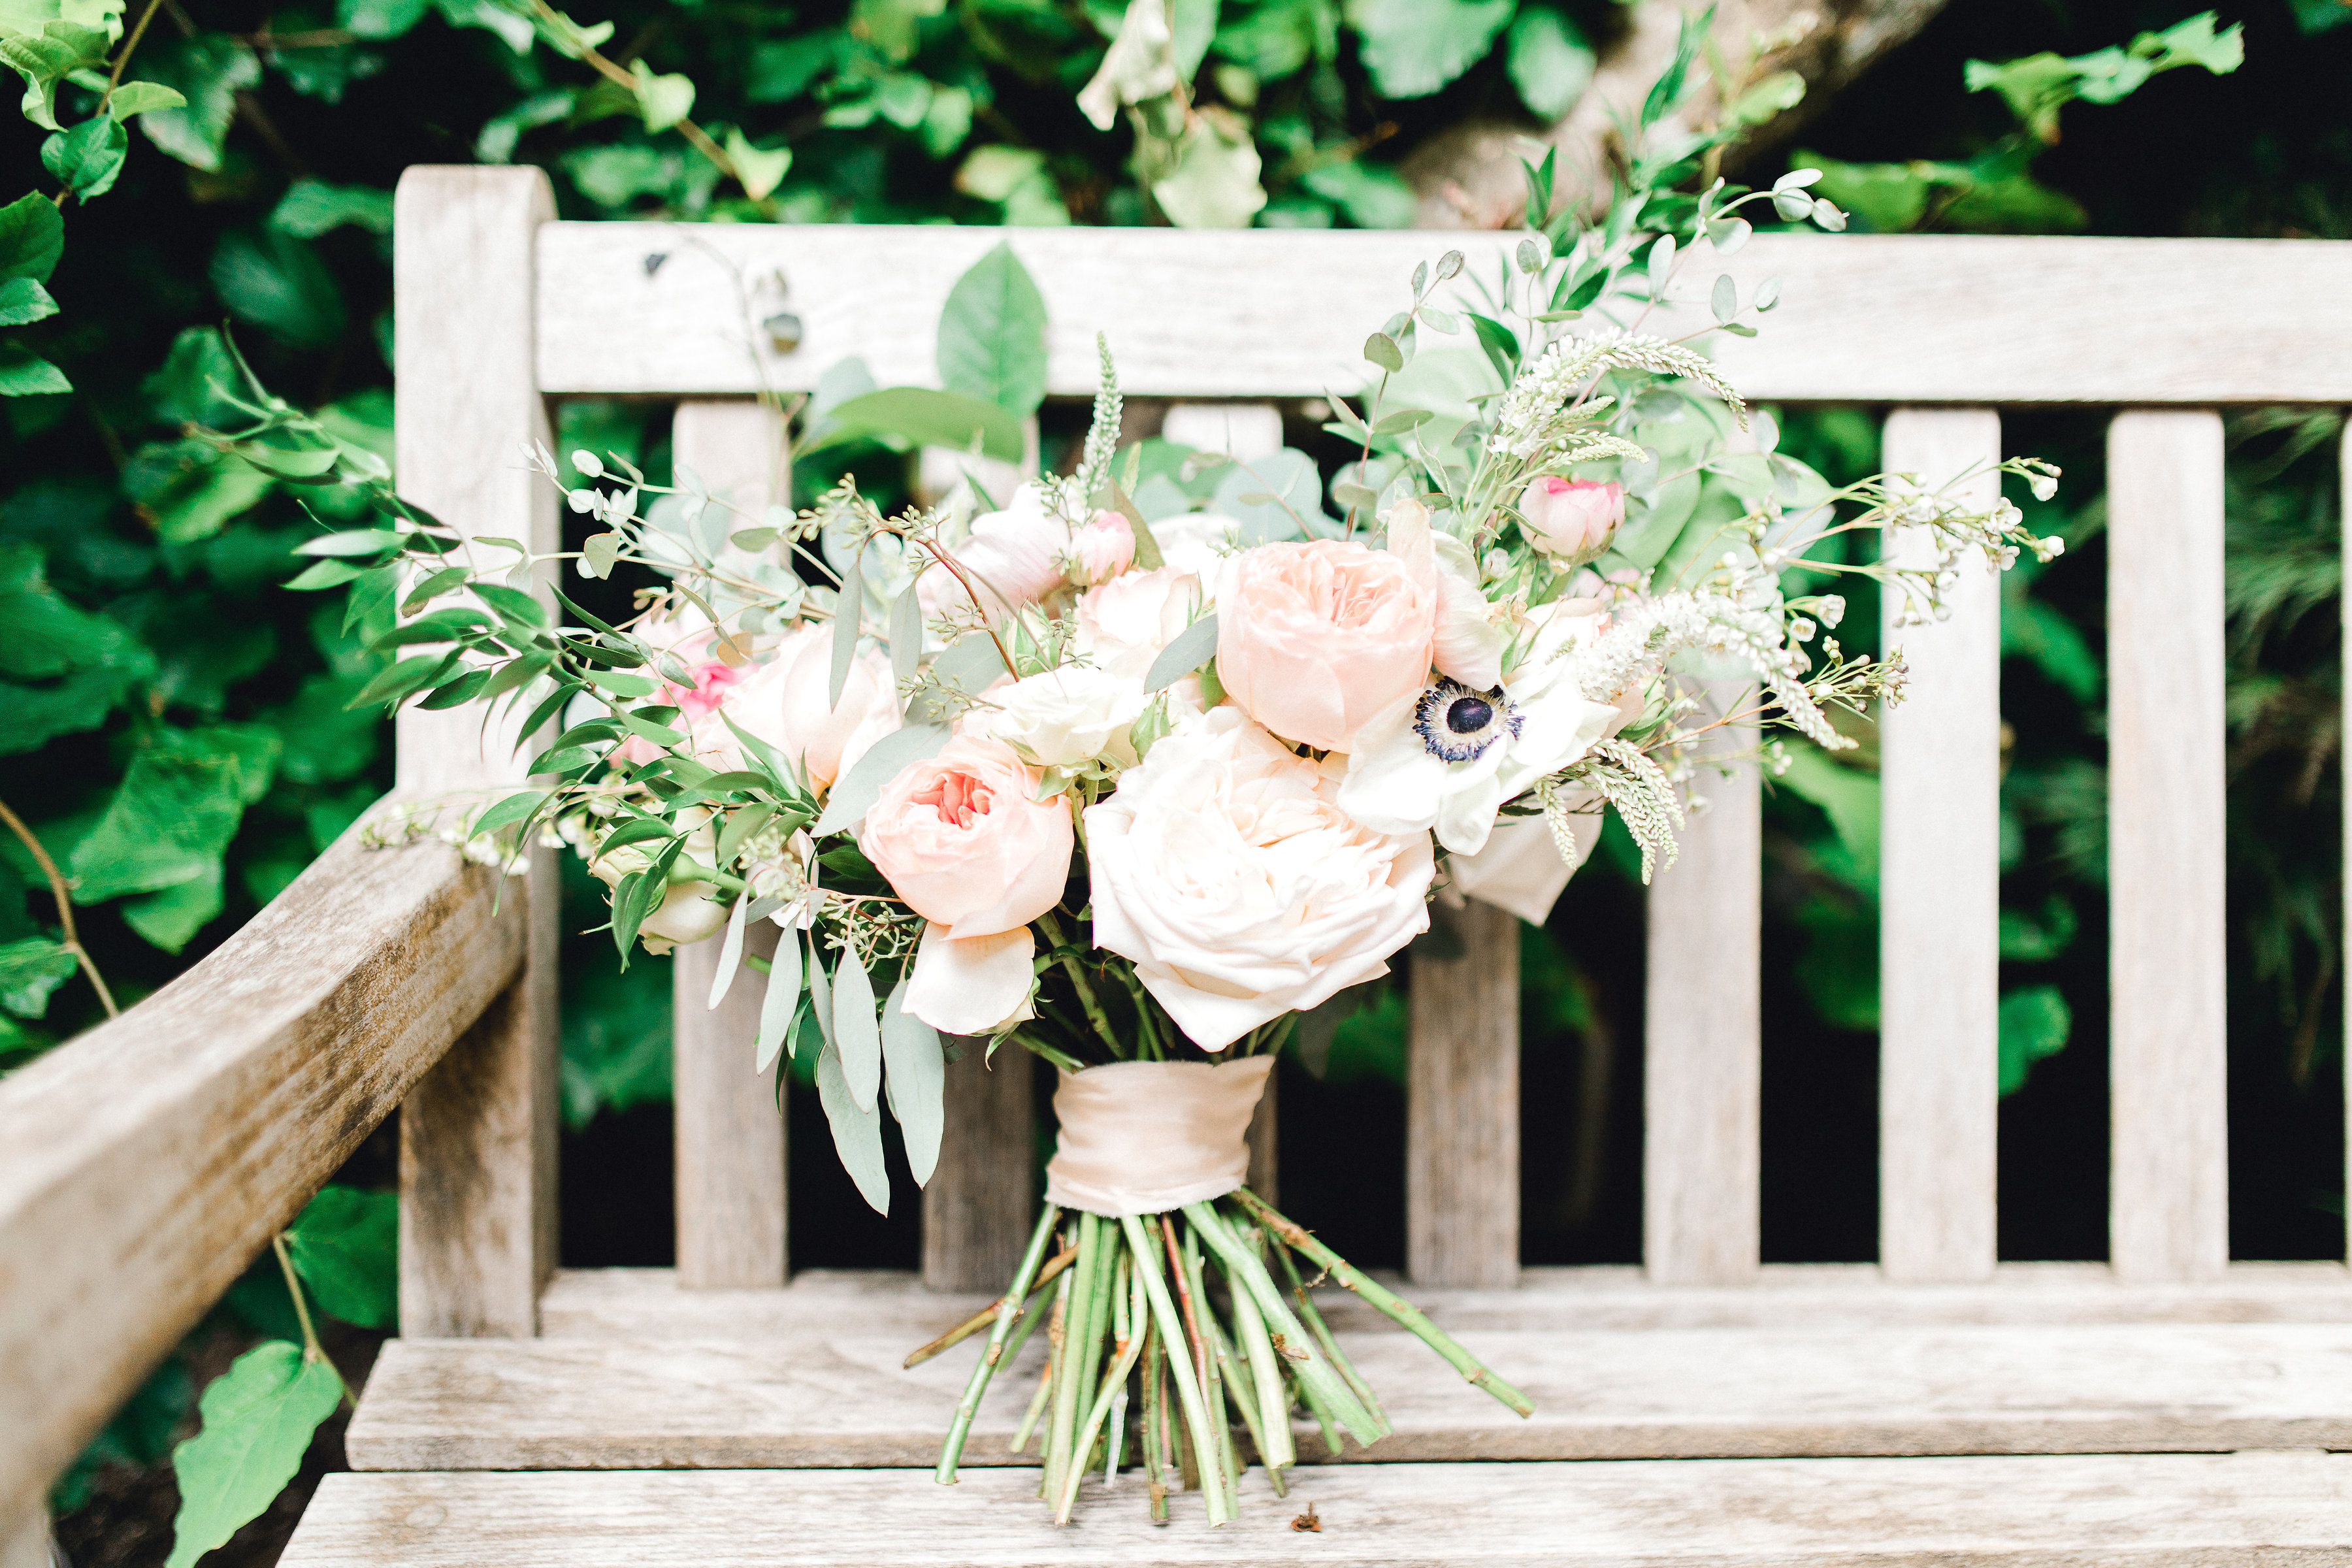 Seattle wedding, Washington wedding, bride and groom, PNW wedding, wedding inspiration, wedding flowers, Seattle bride, wedding bouquet